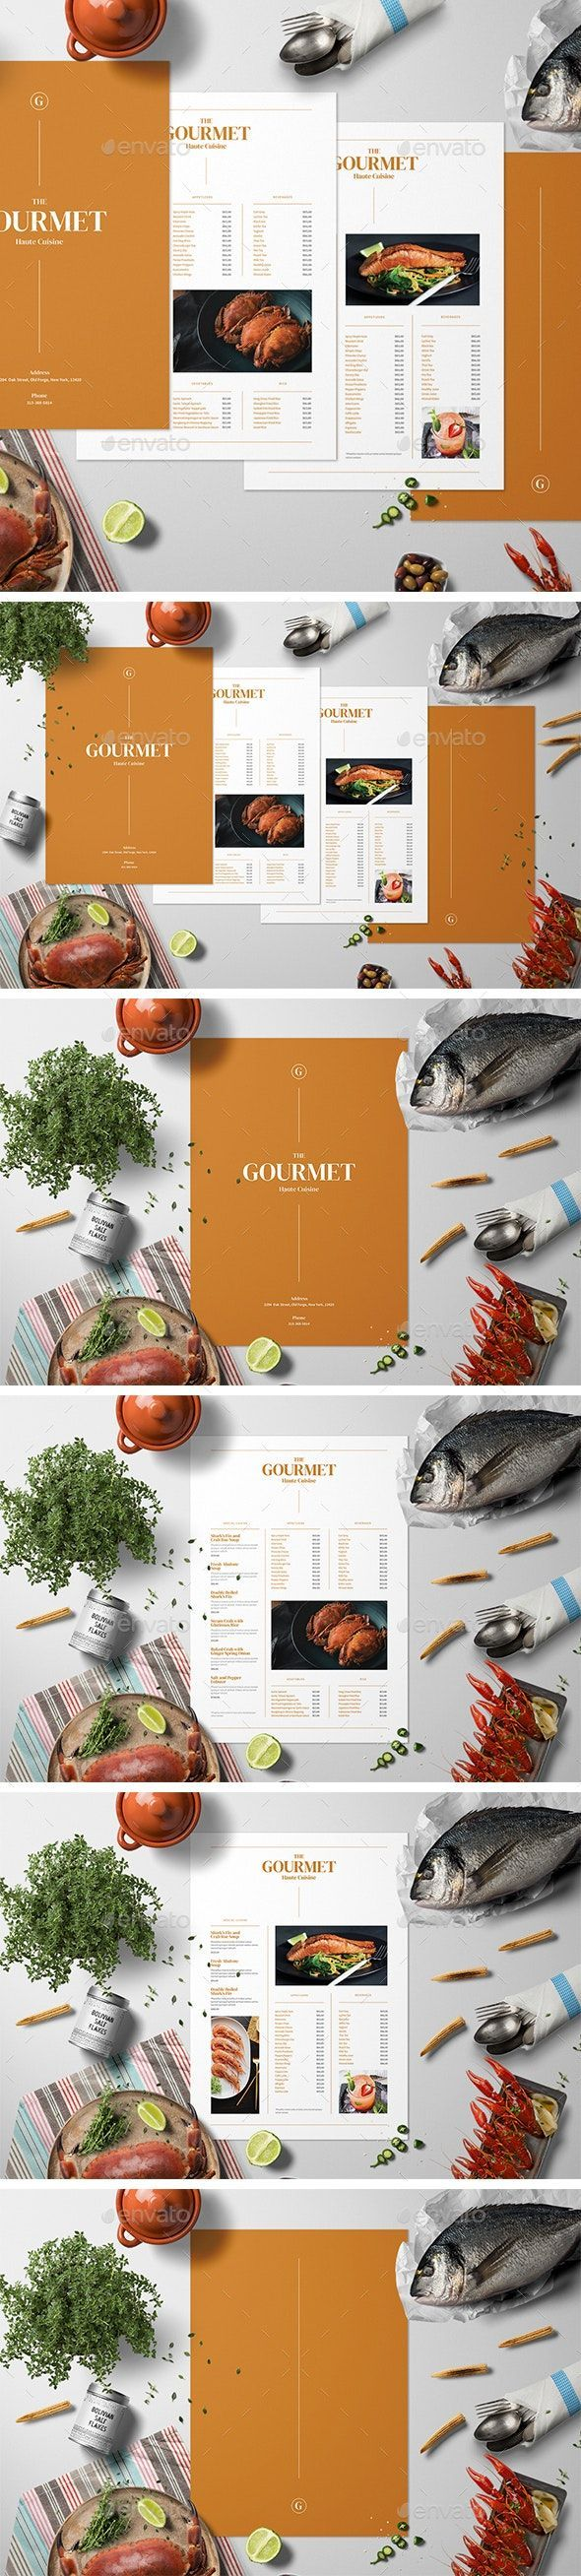 Restaurant Menu Food Menus Print Templates Free Restaurant